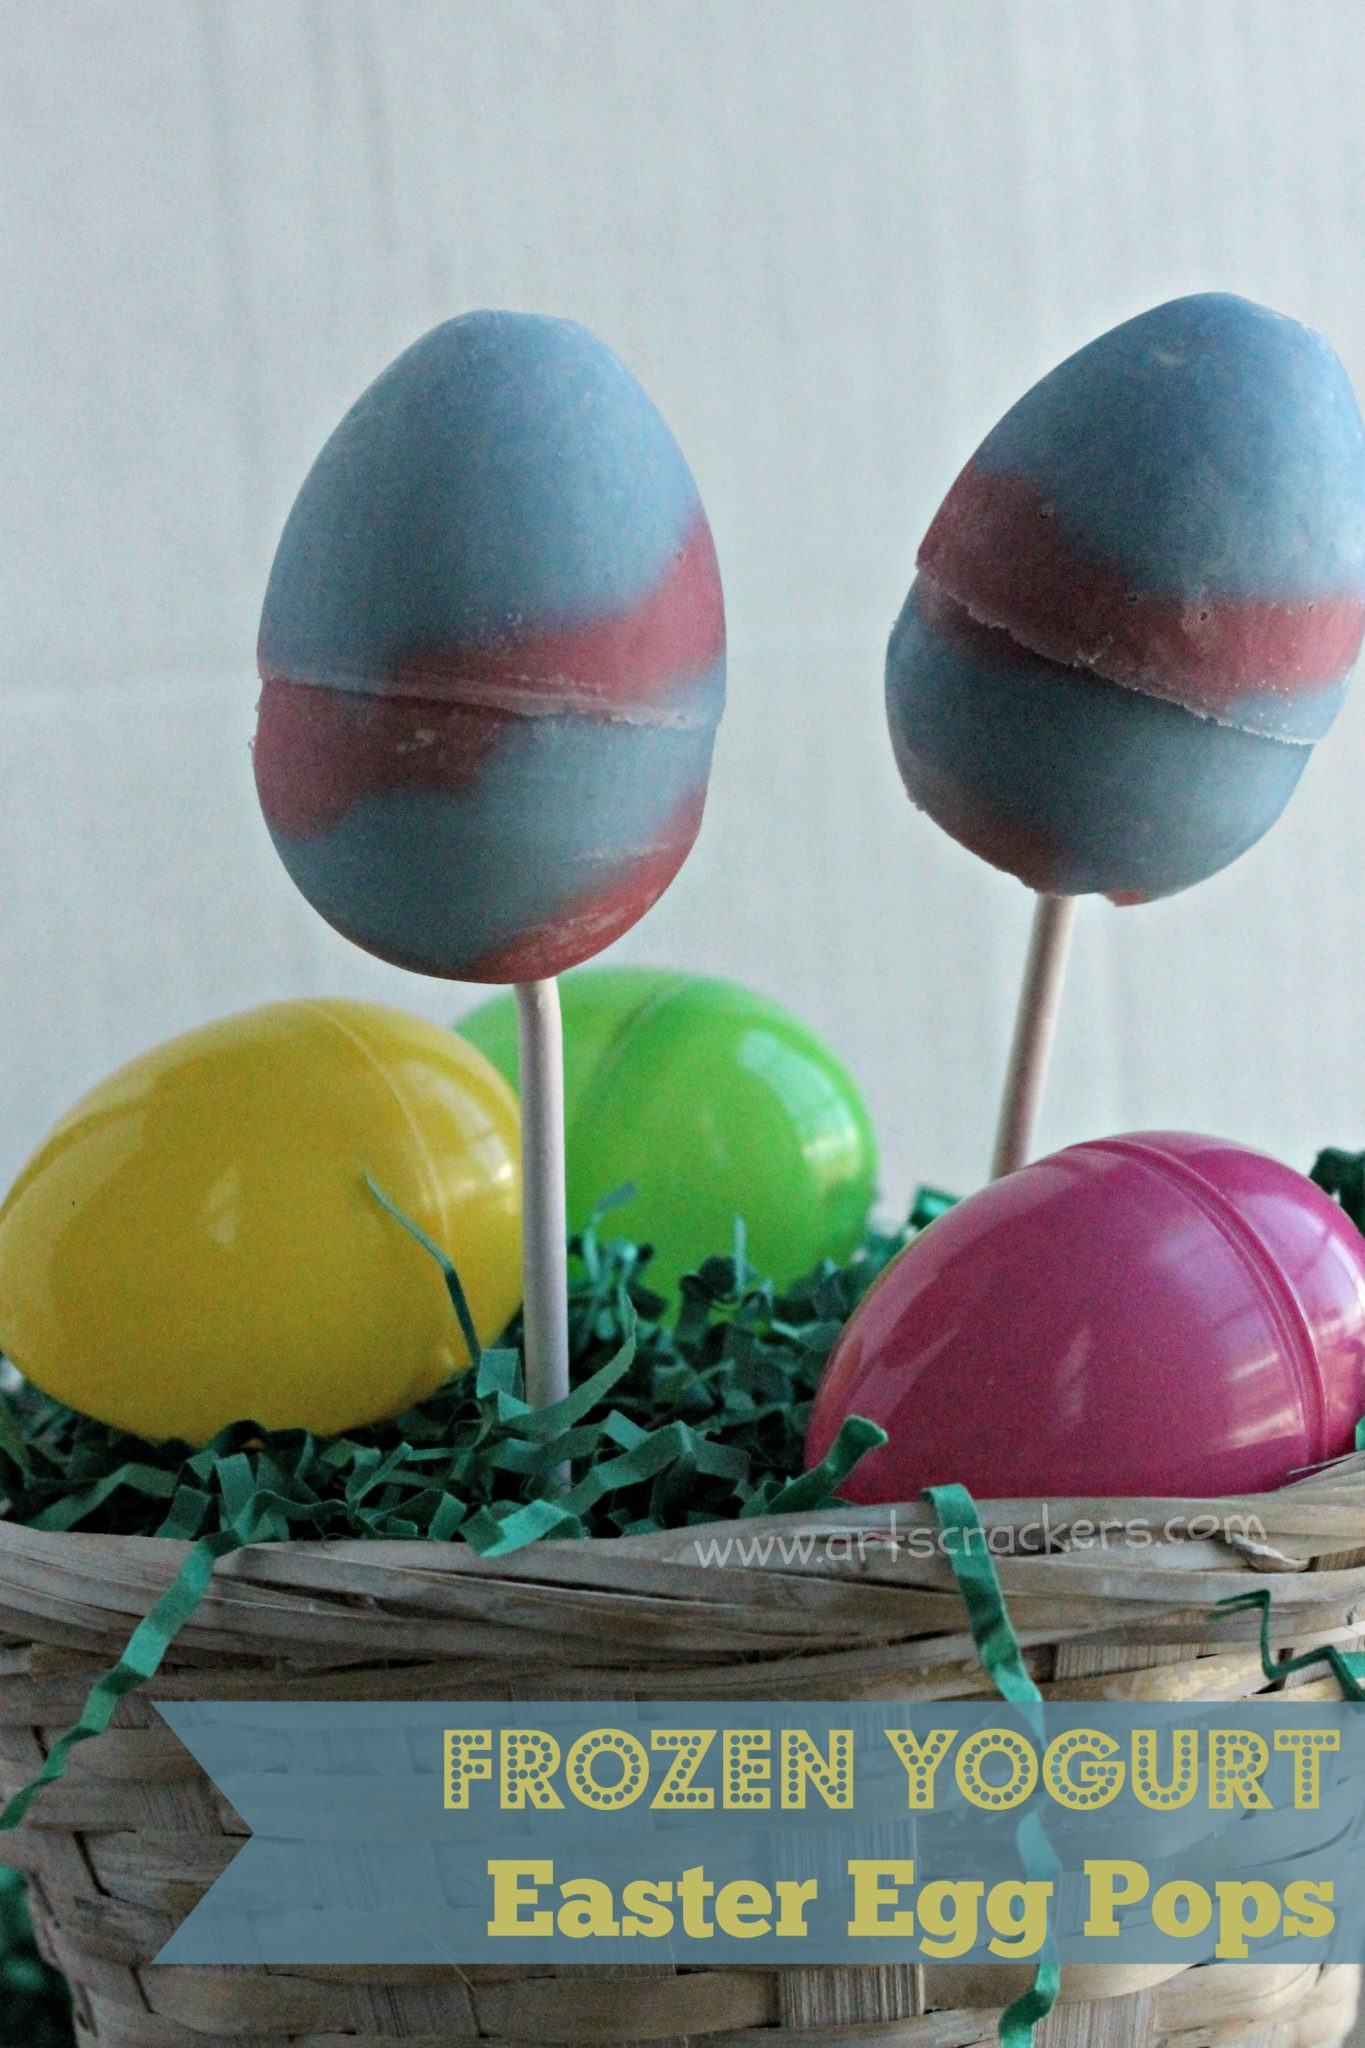 frozen yogurt easter egg pops